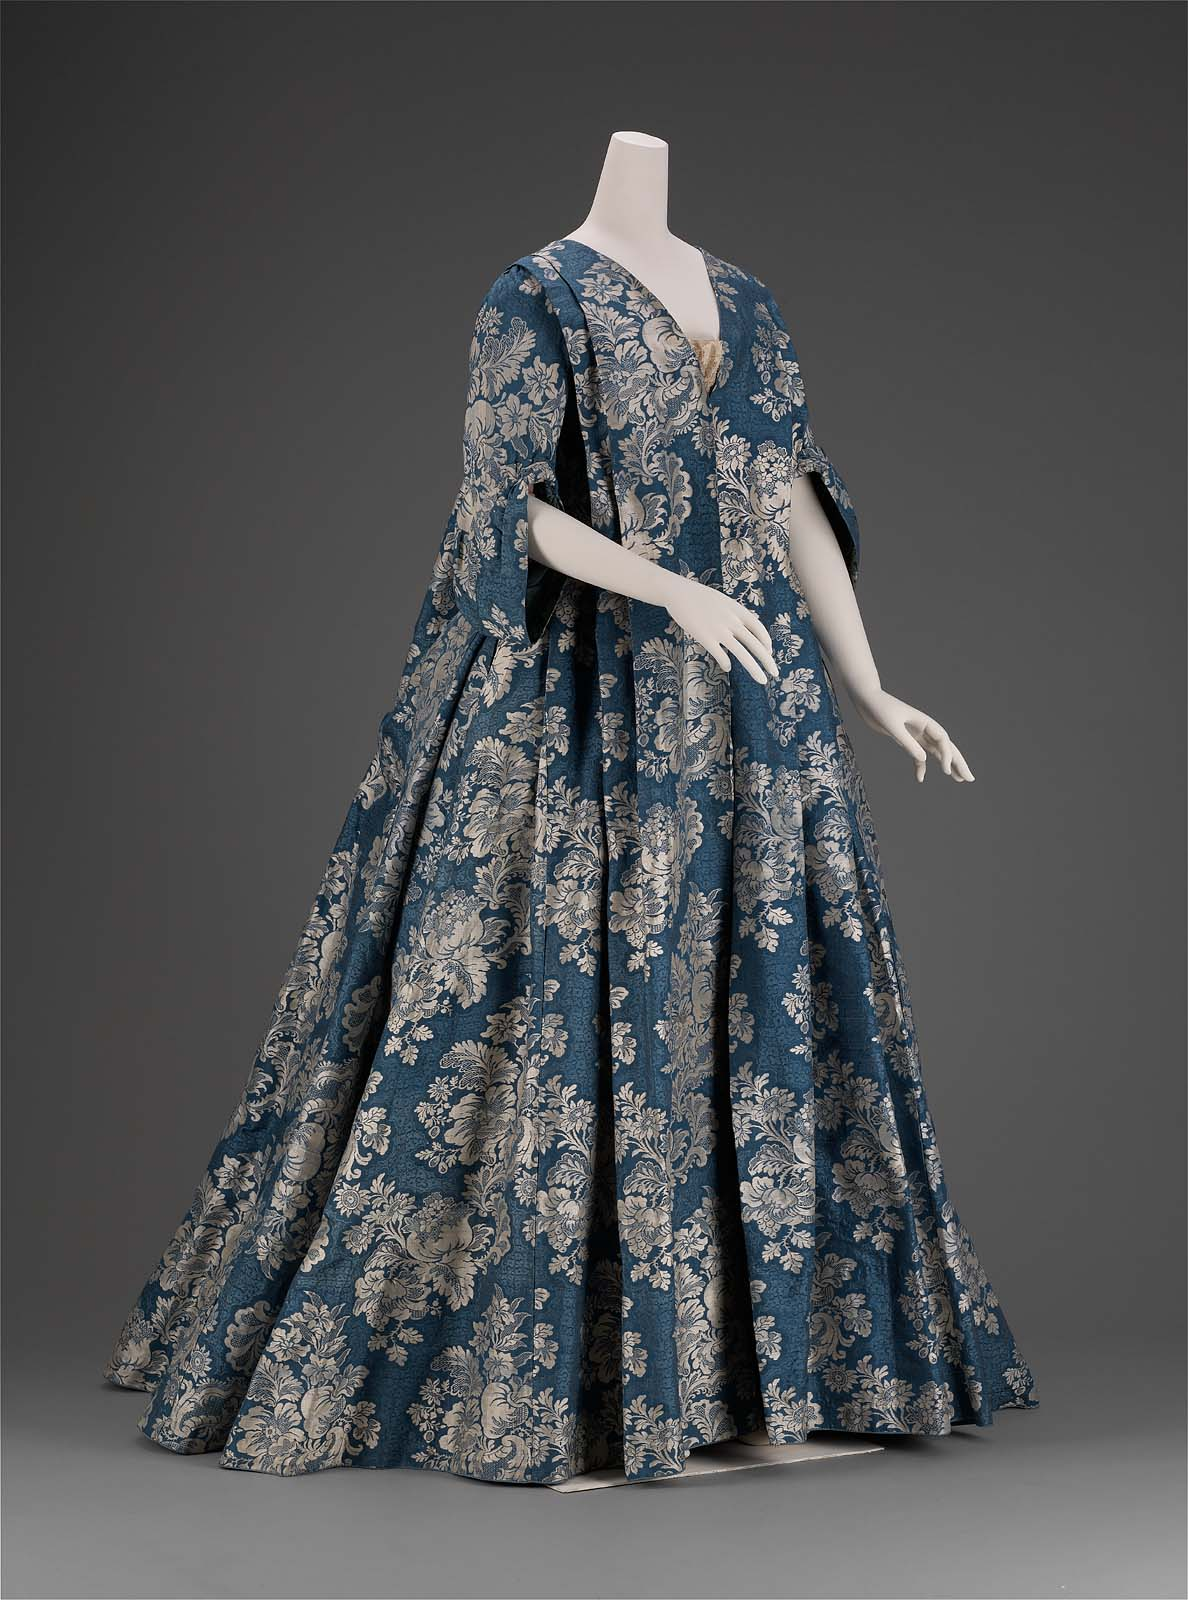 Dress and Petticoat, French 1730. Collection of the Museum of Fine Arts, Boston